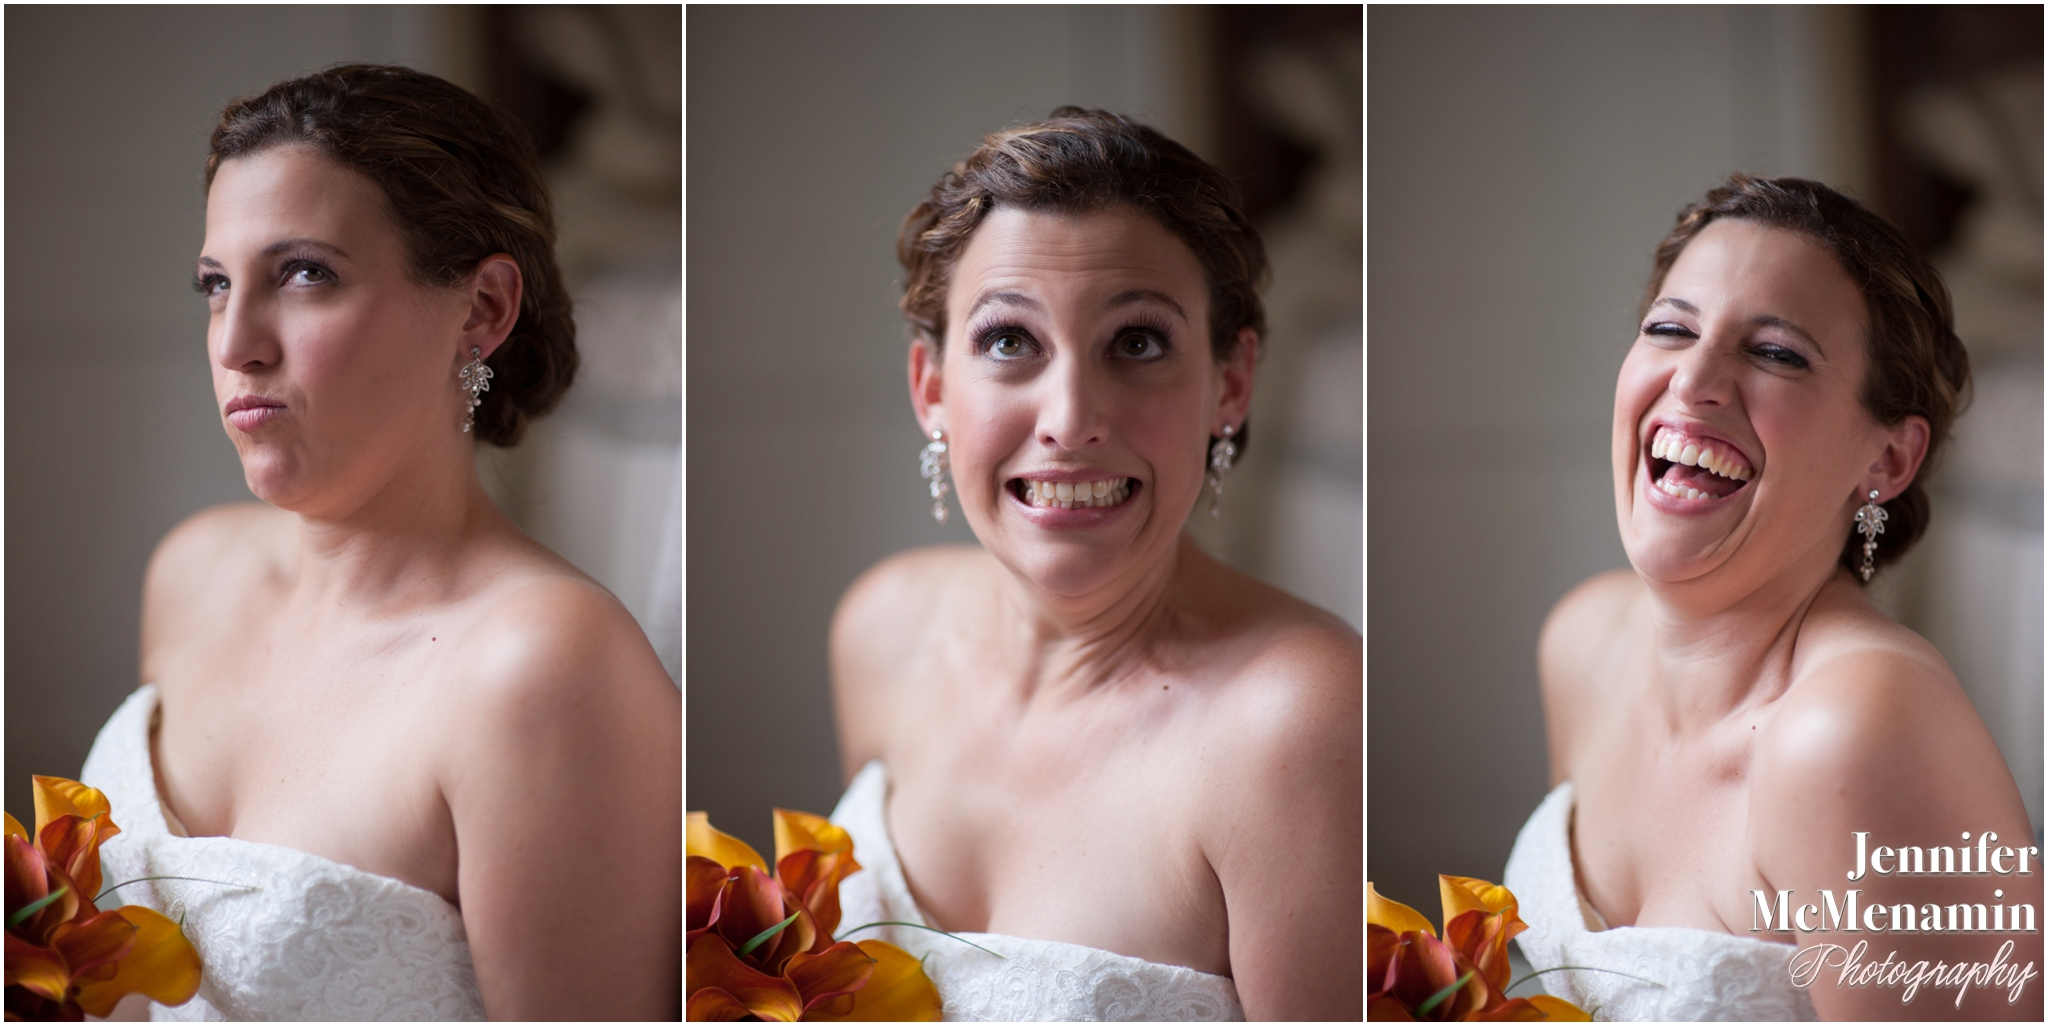 019-HenningMiller_00649-0123_JenniferMcMenaminPhotography_Evergreen-Museum-And-Carriage-House_Evergreen-wedding_Baltimore-wedding-photographer_Baltimore-wedding-photography